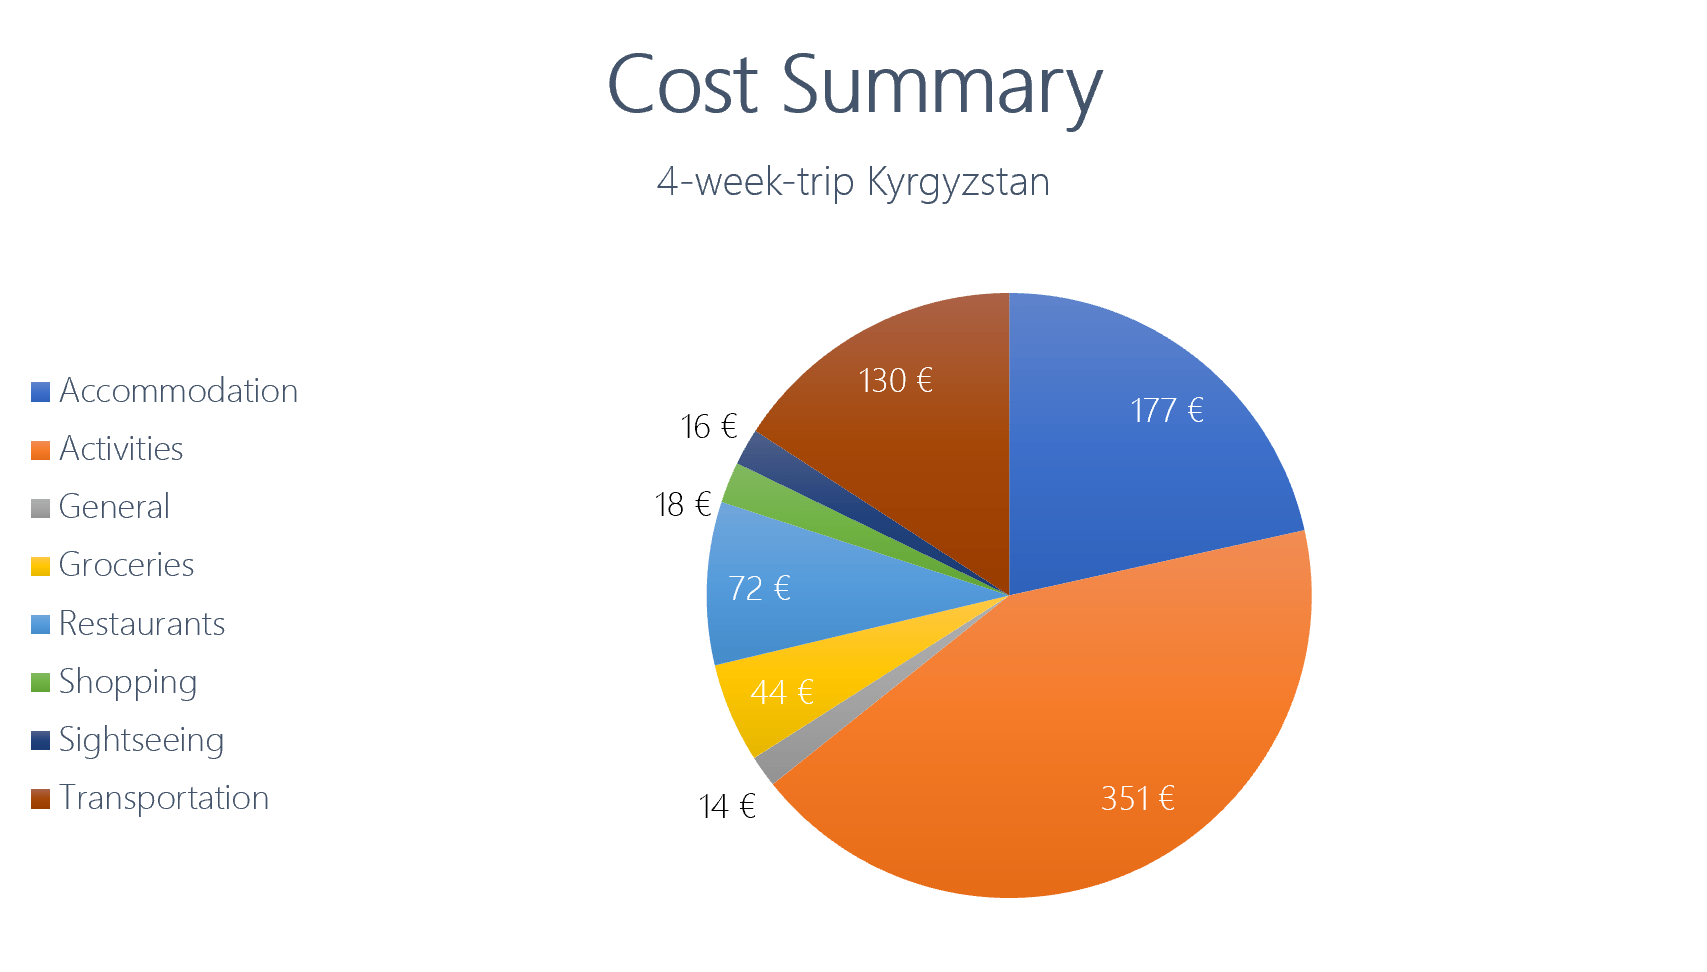 Cost Summary of a 4-week-trip through Kyrgyzstan in euro